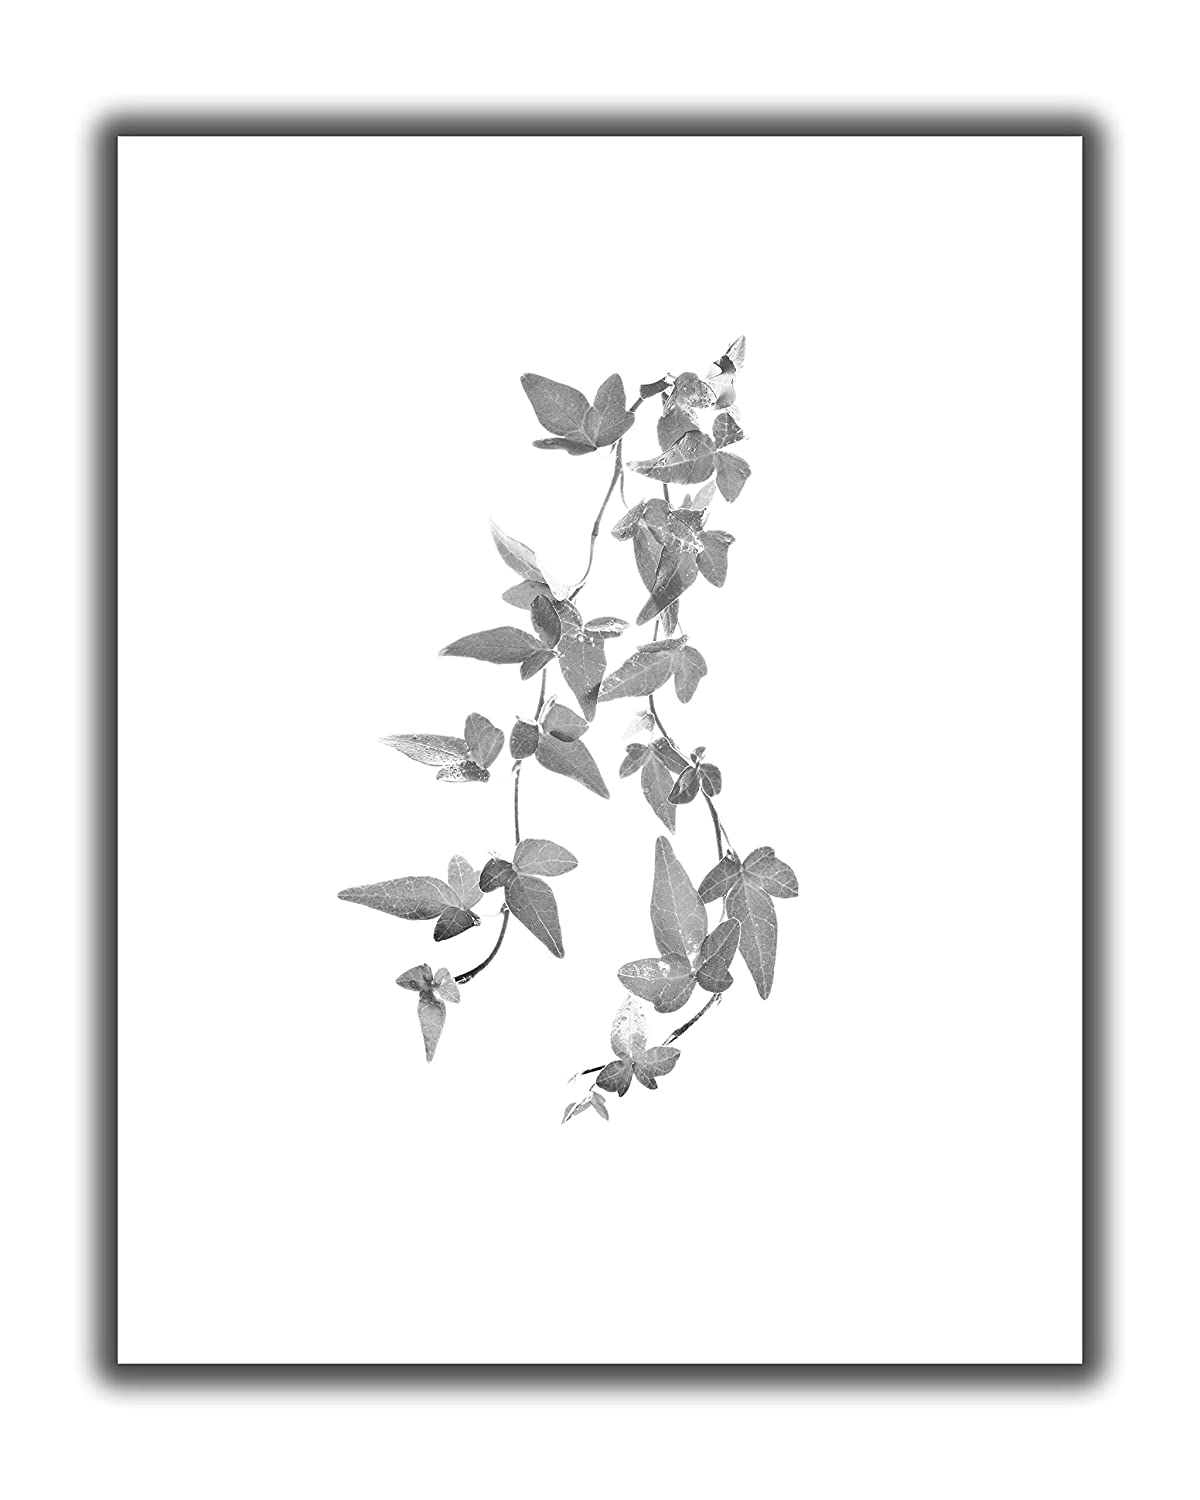 Ivy Leaves on Branch Wall Art Print - 11x14 UNFRAMED, Minimalist Modern Black & White Decor - A Neutral, Contemporary Look for Any Room